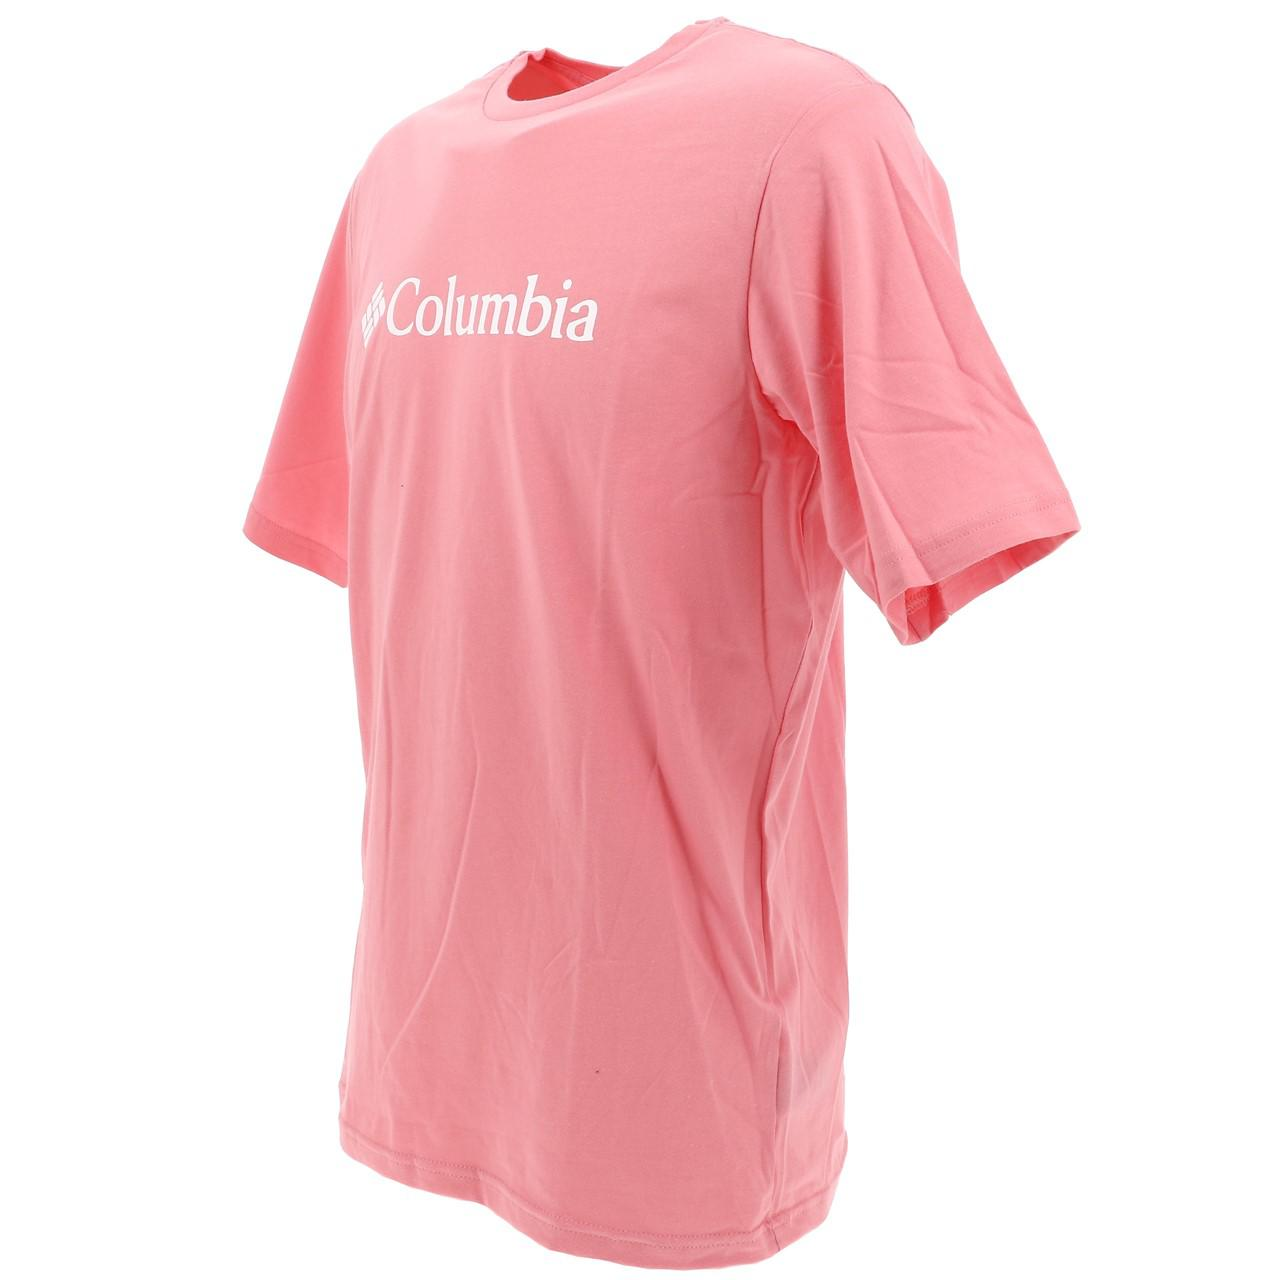 Short-Sleeve-T-Shirt-Columbia-Csc-Basic-Logo-Rse-Mc-Tee-Pink-18106-New thumbnail 4